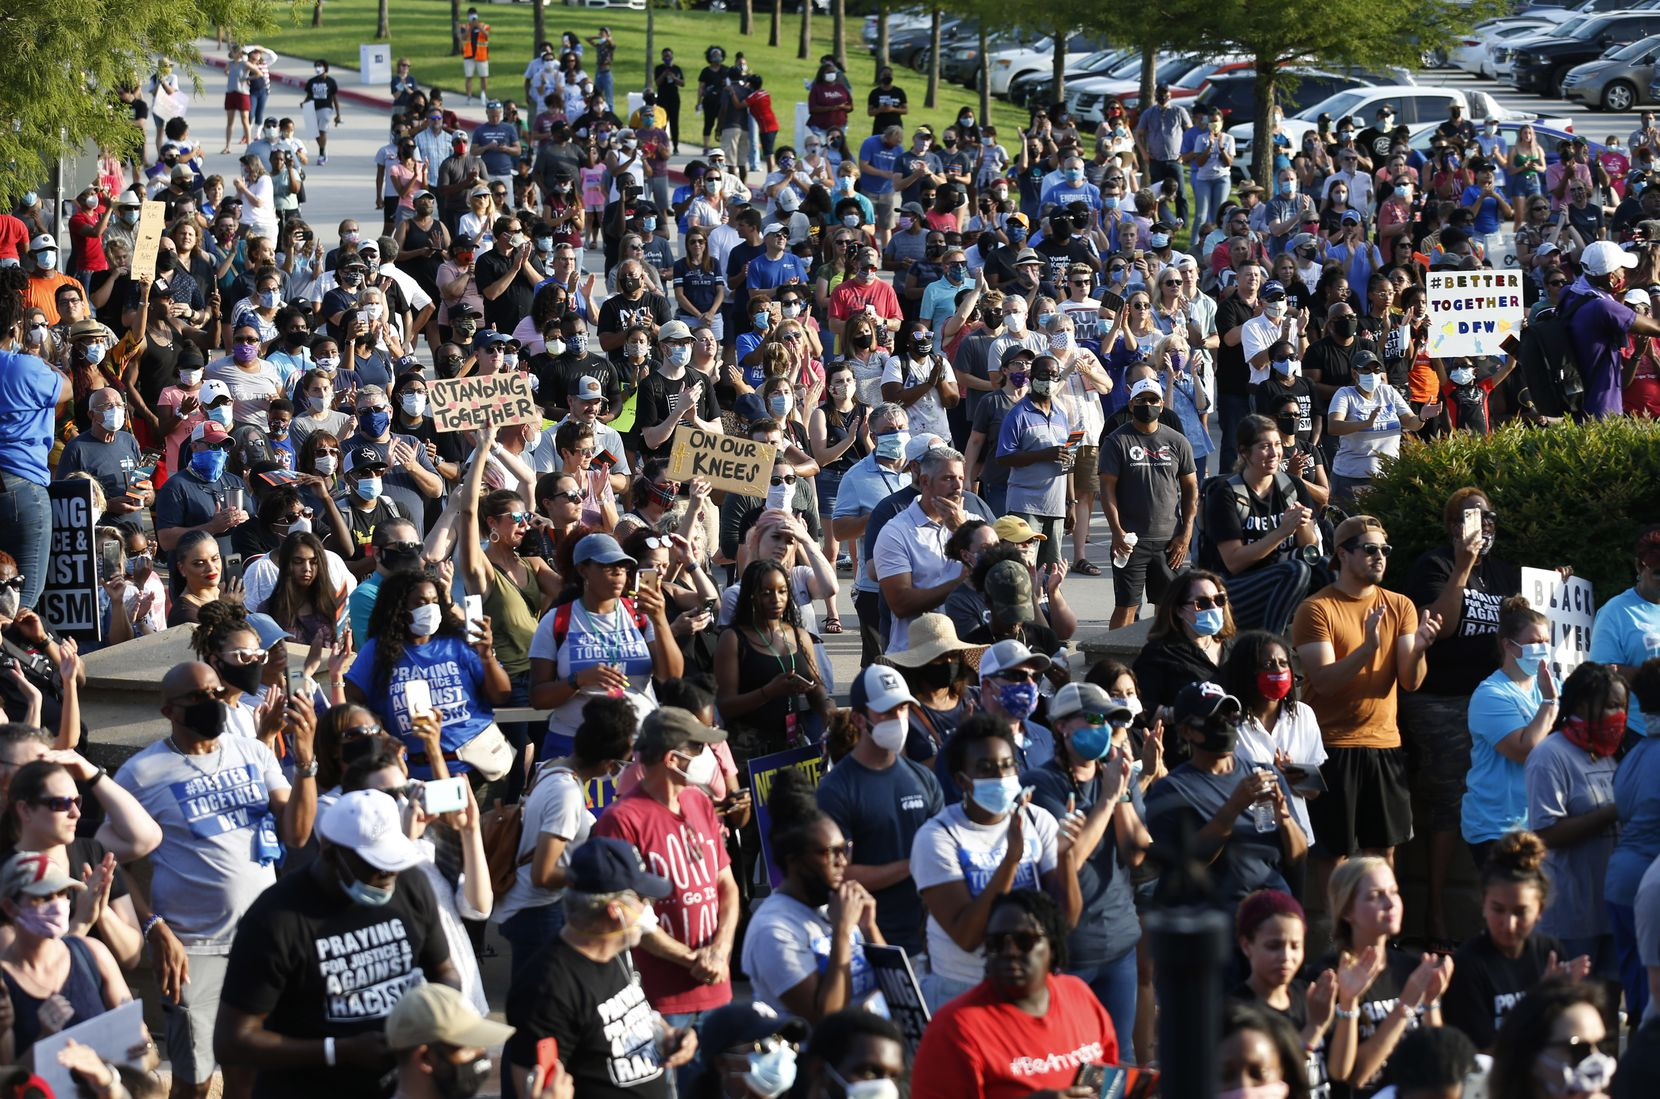 People clap after singing a song during a McKinney demonstration organized by Collin County churches Thursday.